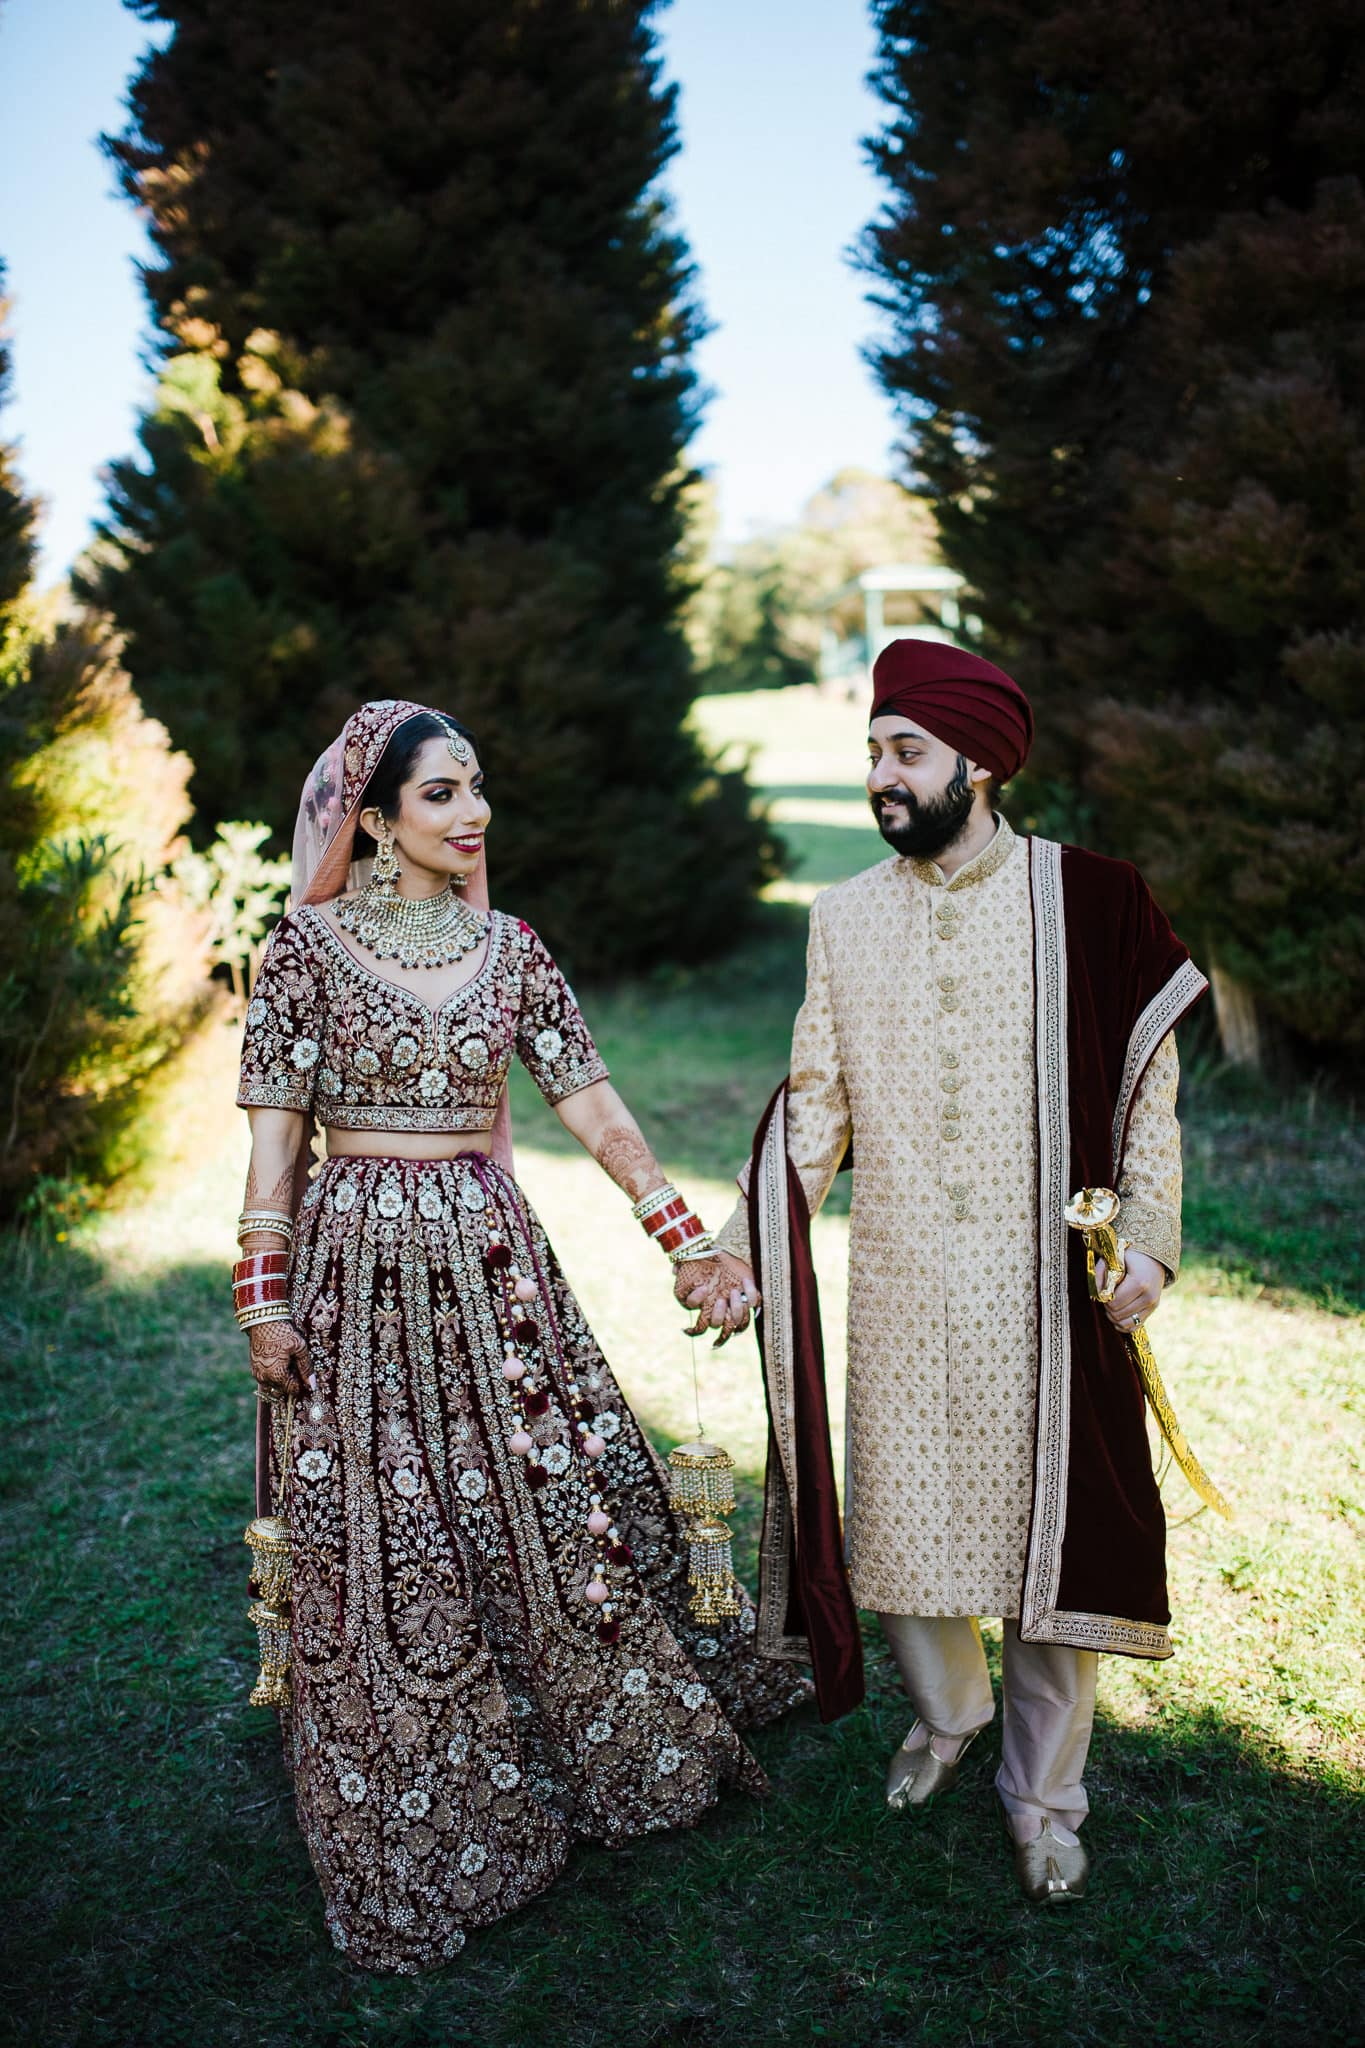 Simran and Anmol's vibrant and modern Sikh wedding celebration in Melbourne. Wedding photography was captured by Indian wedding photographer, Bhargav Boppa. The couple were colour coordinated for every function. We loved Simran's royal and elegant bridal lehenga for her wedding day especially.